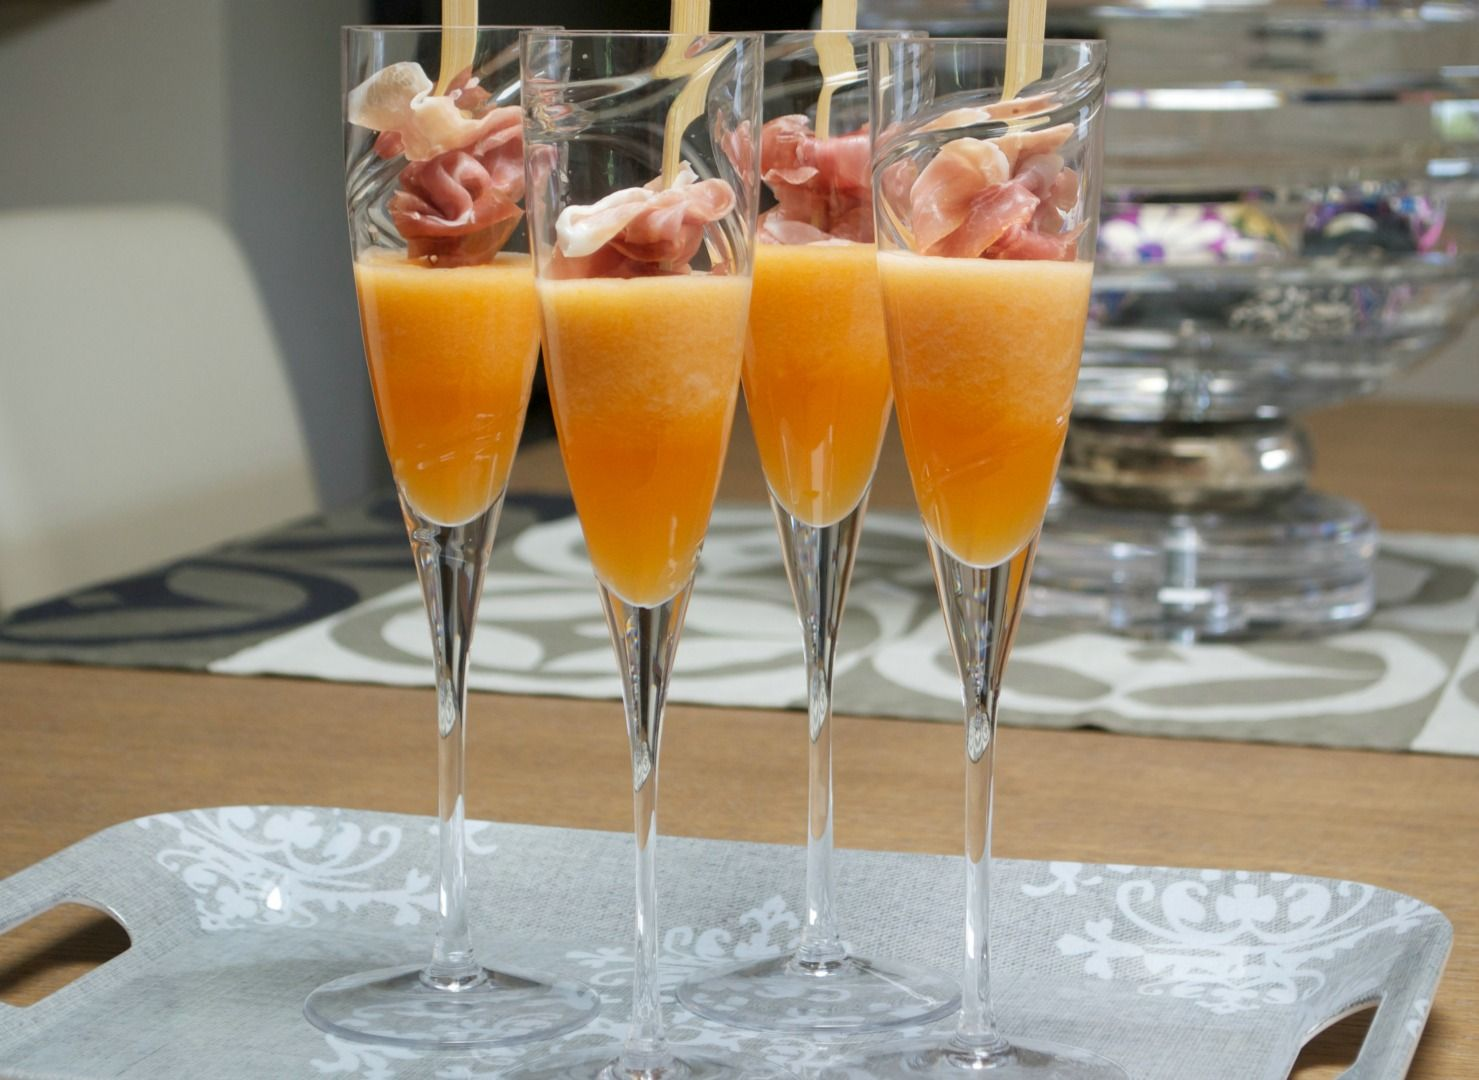 A Fresh Happy Hour With the Prosciutto Cantaloupe Cocktail